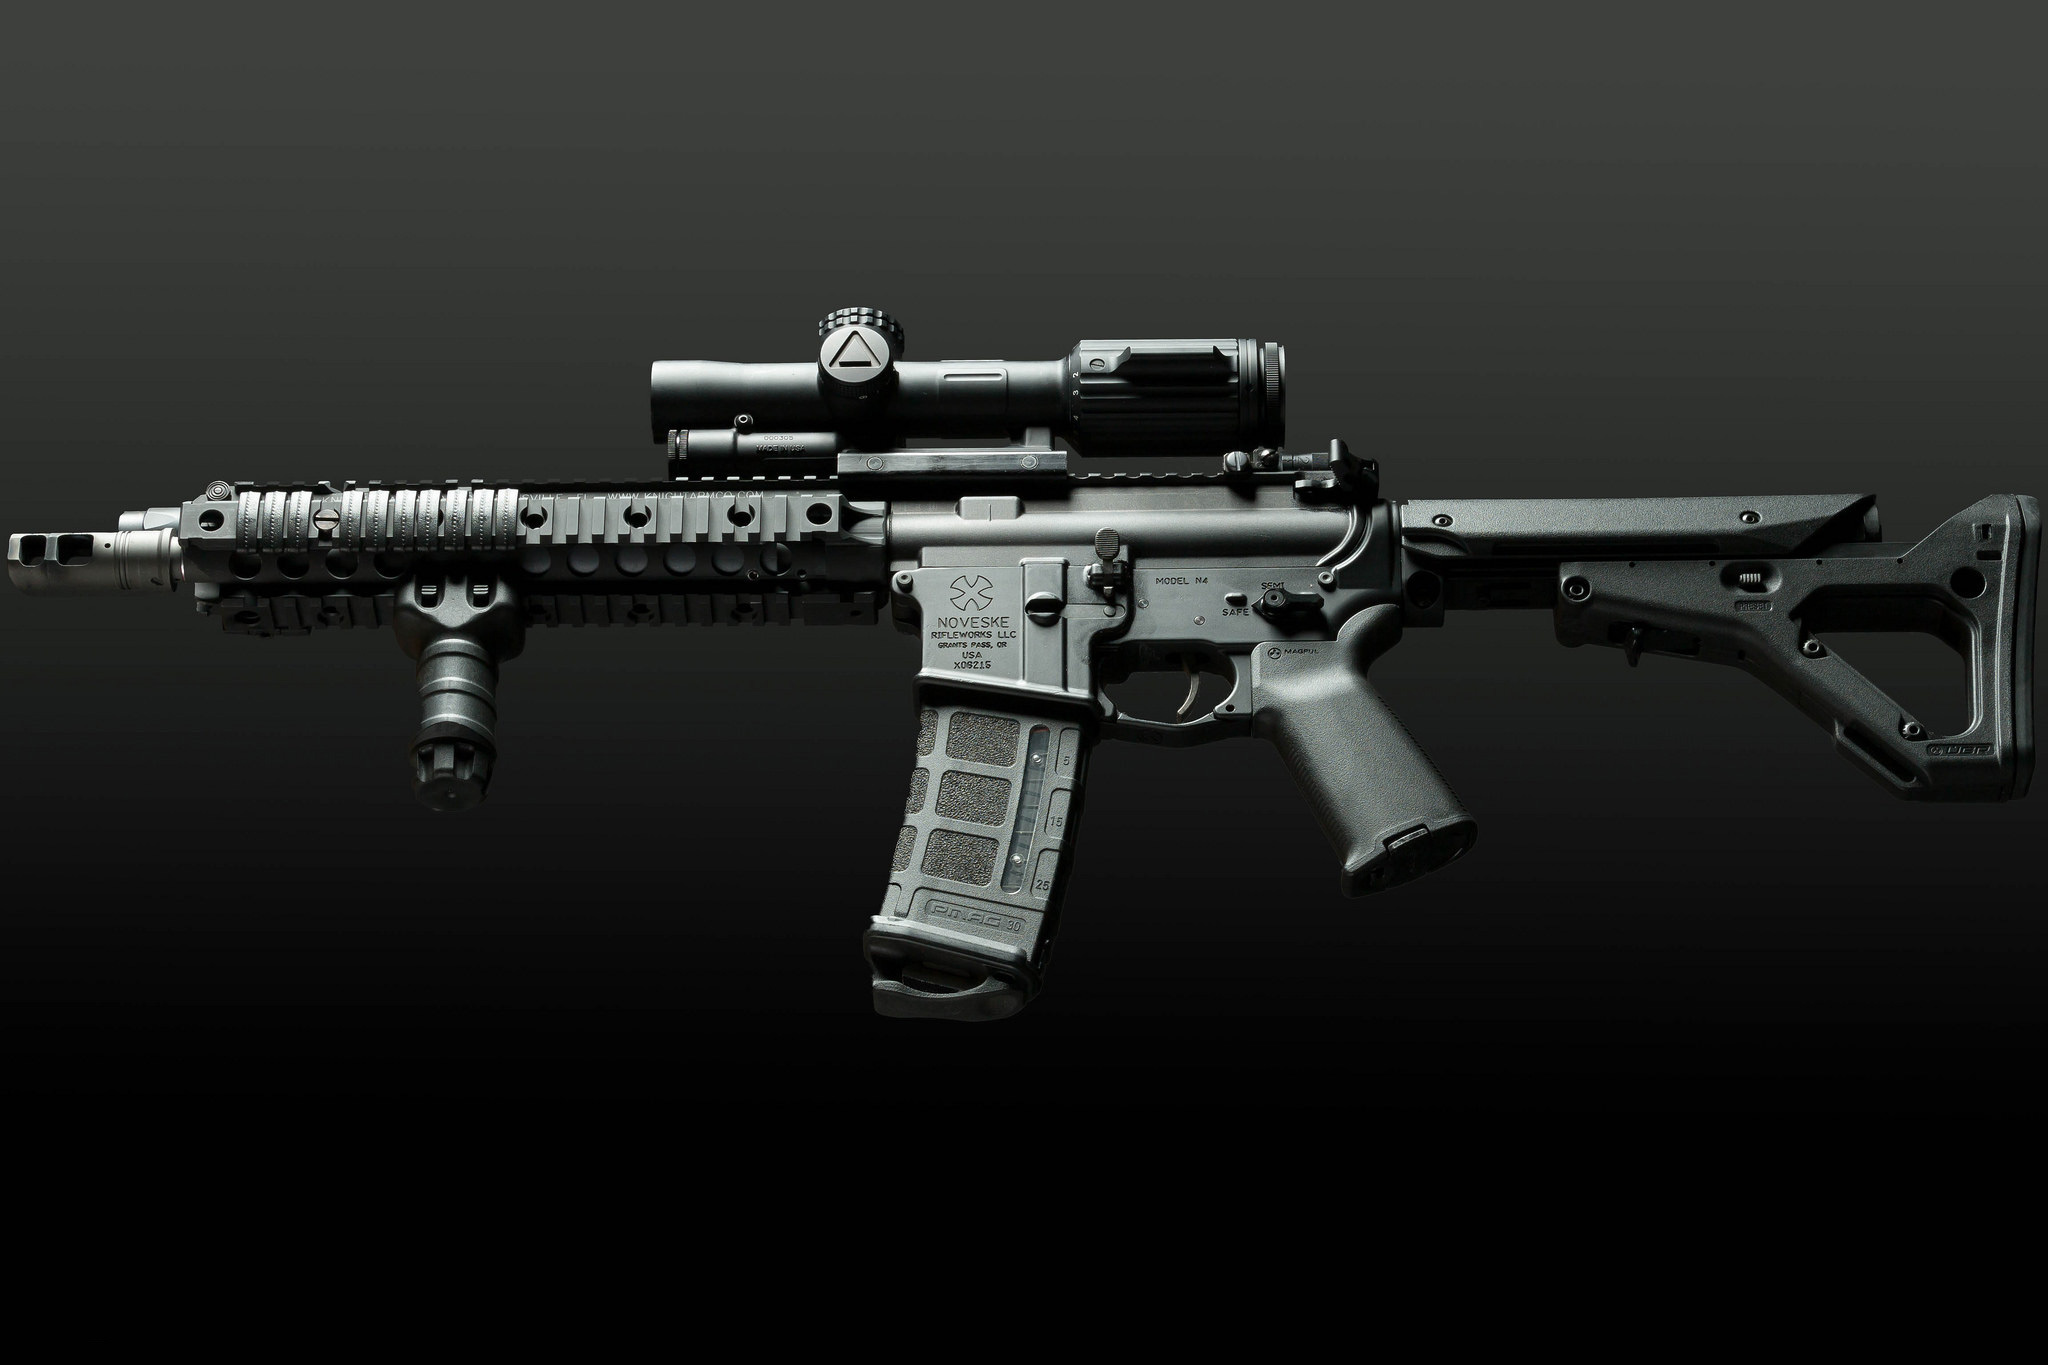 Ar 15 Wallpaper Download Free Beautiful Full Hd: Rifle Full HD Wallpaper And Background Image